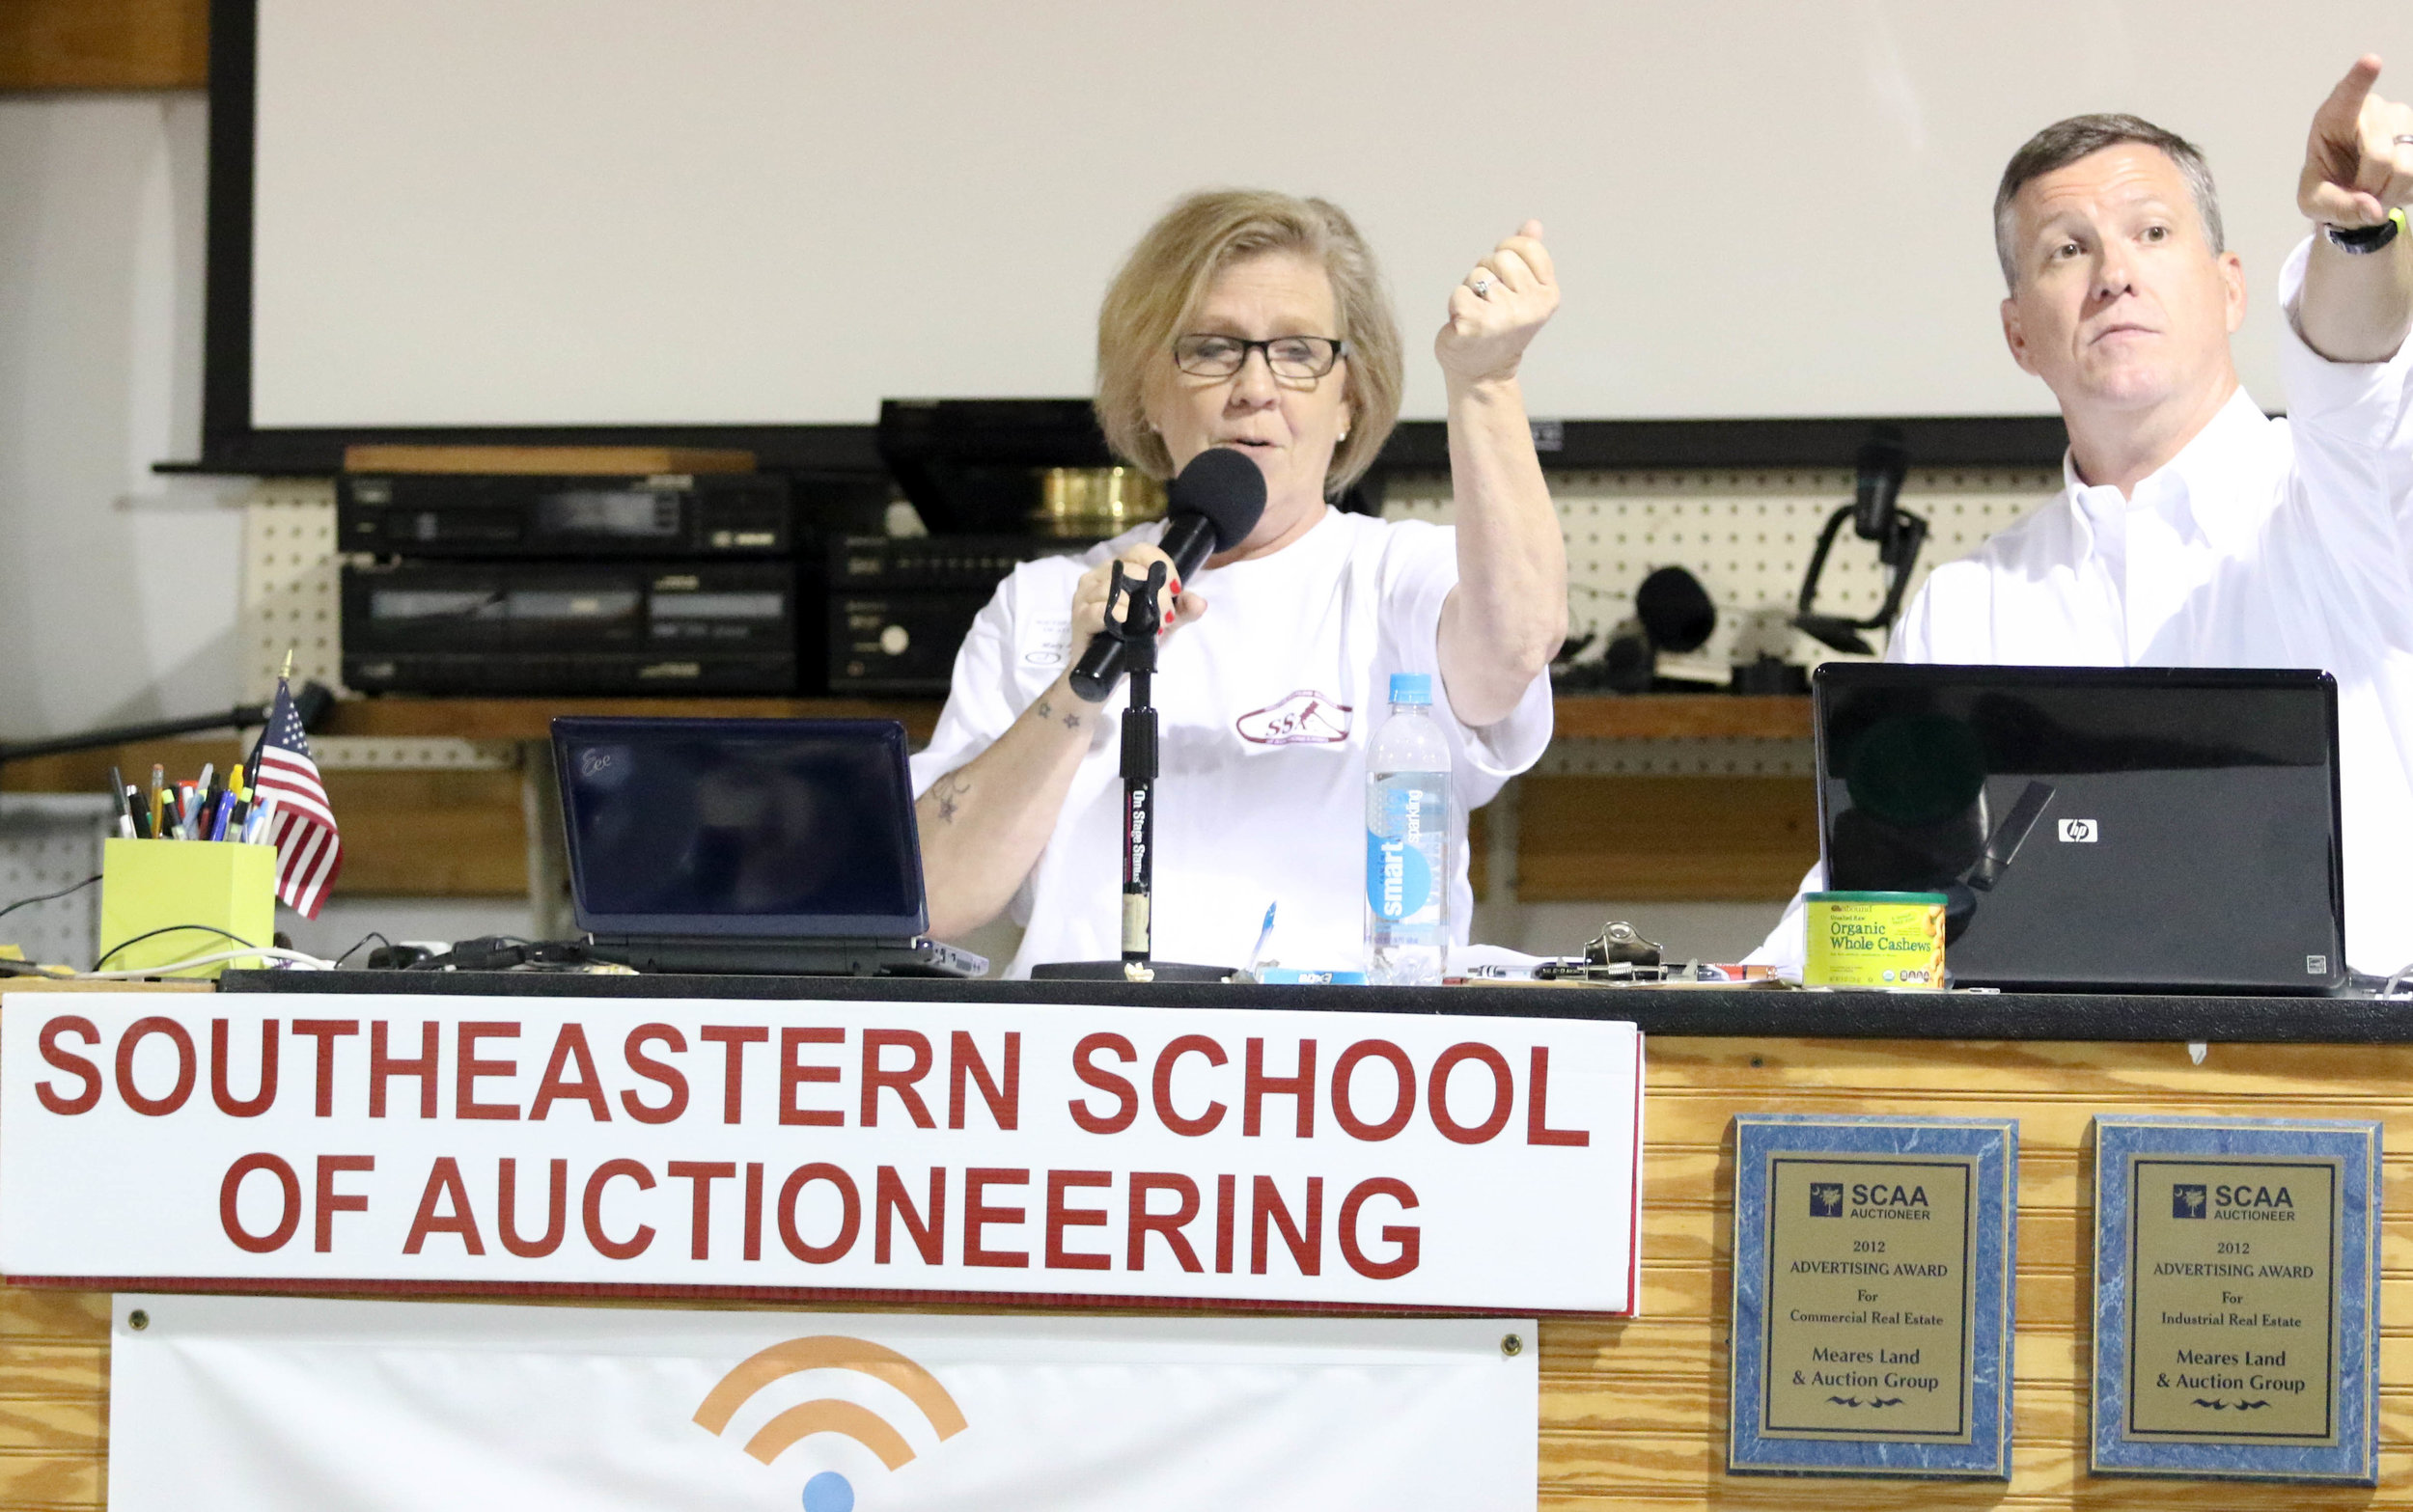 Learning to Auctioneer